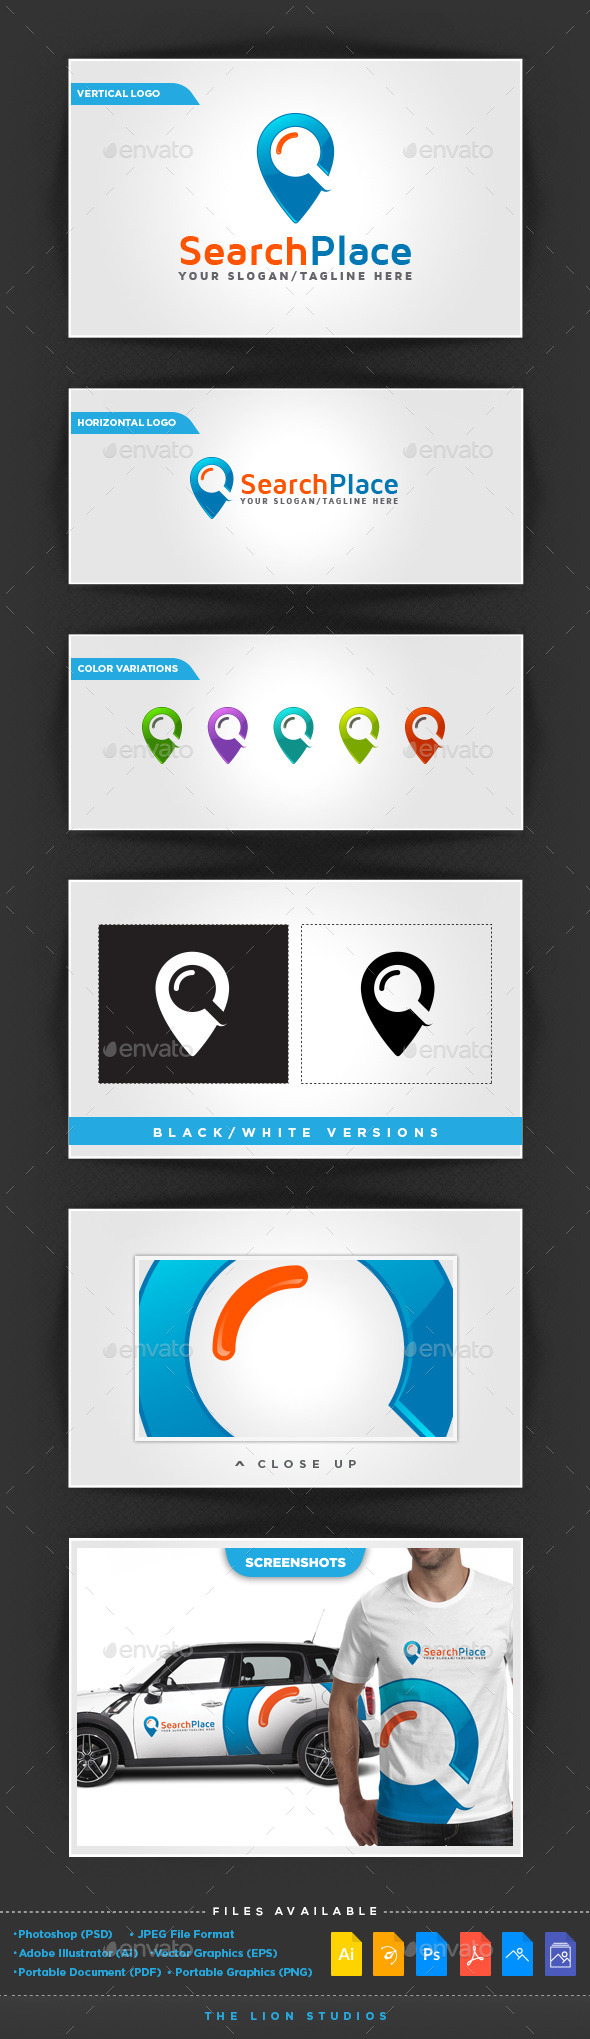 Search Place Logo - Abstract Logo Templates